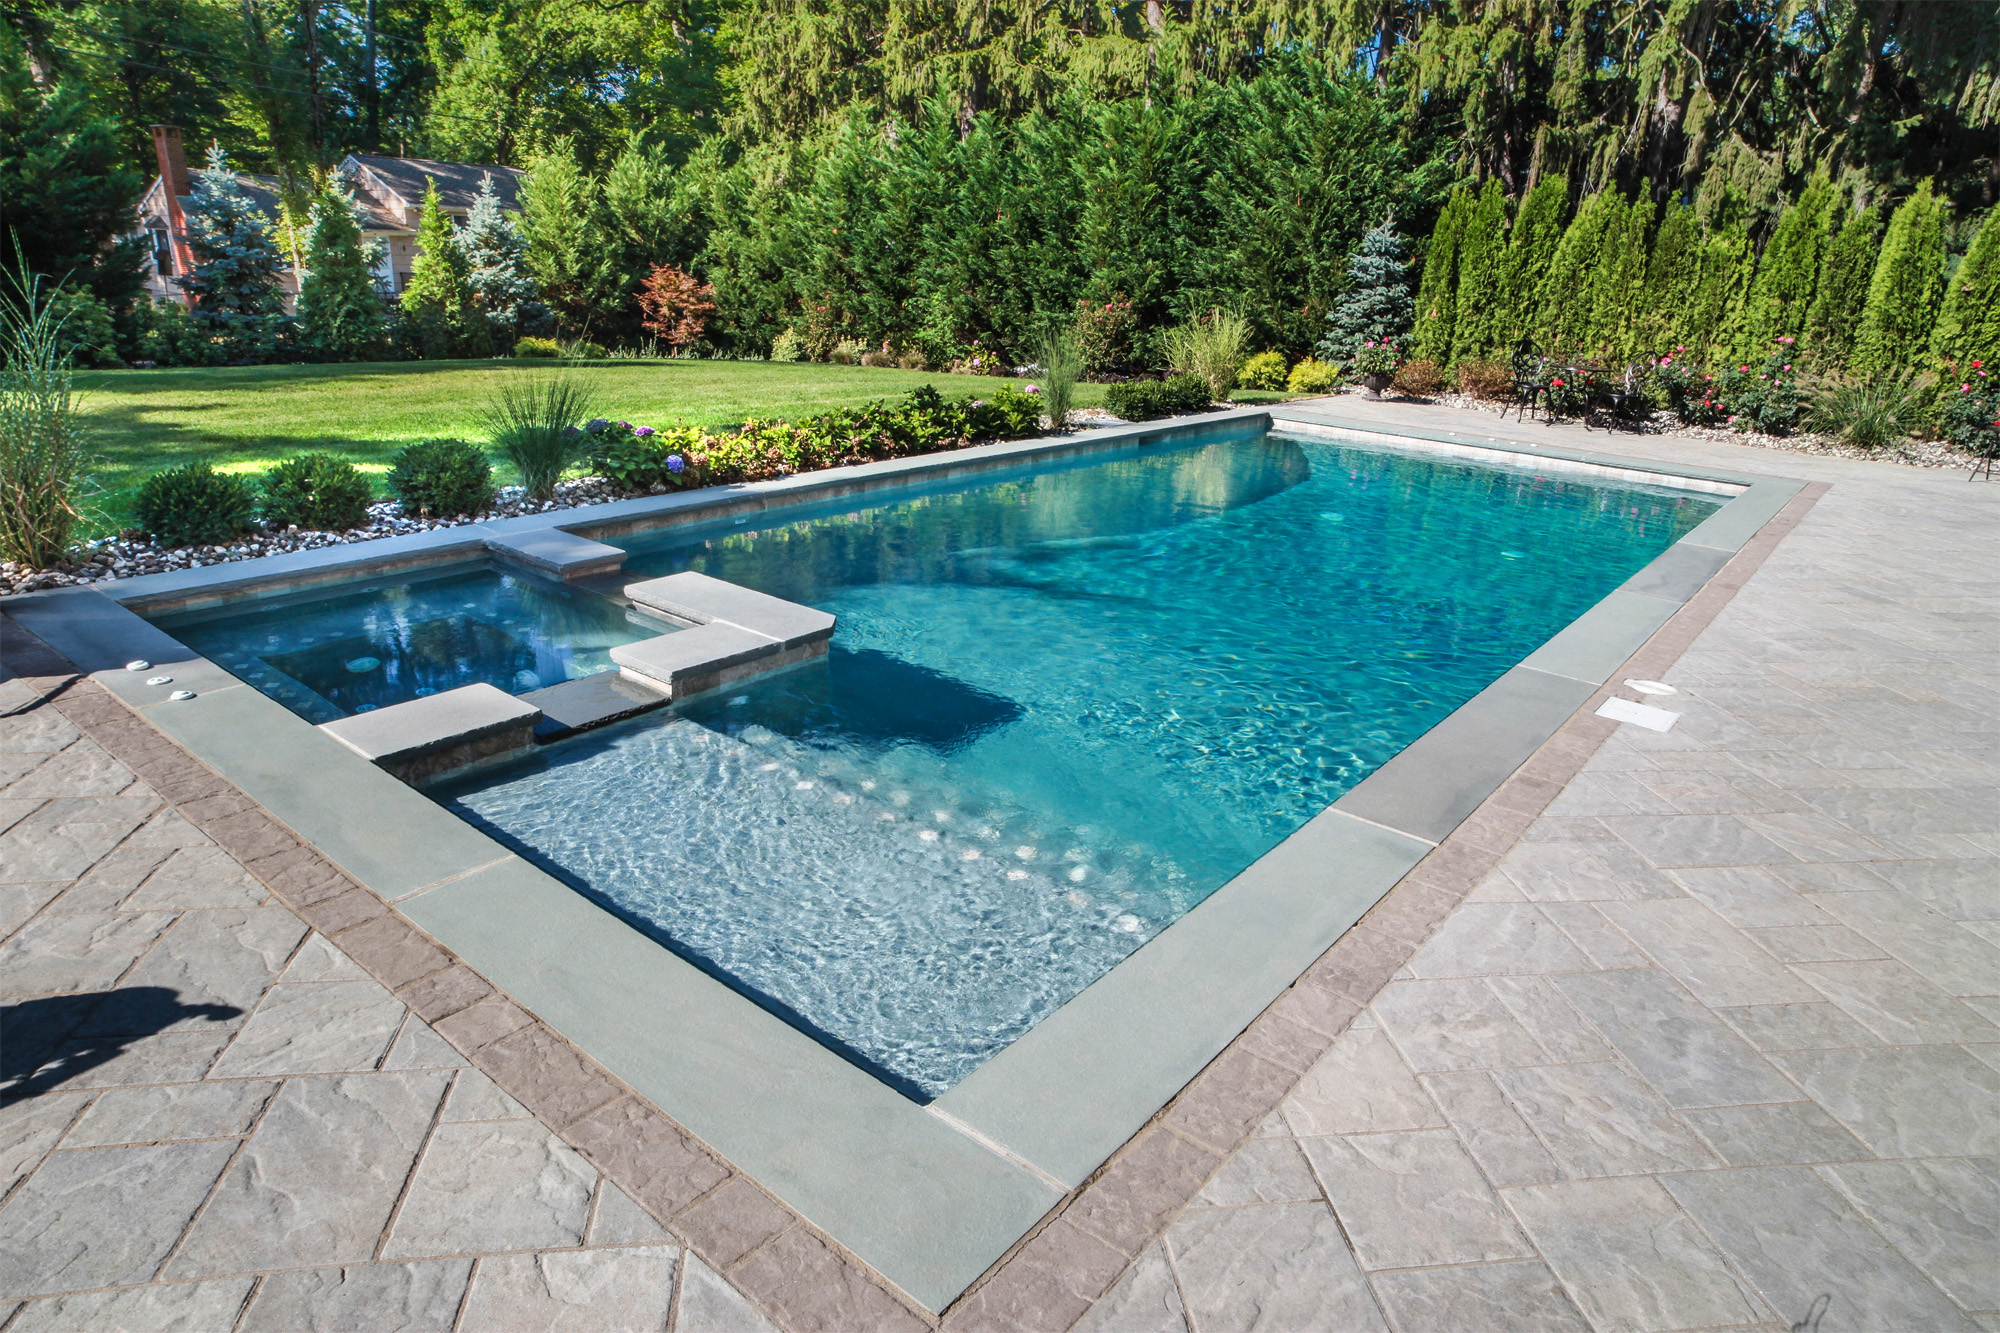 Emejing rectangular swimming pool designs photos for Pool design aufkleber